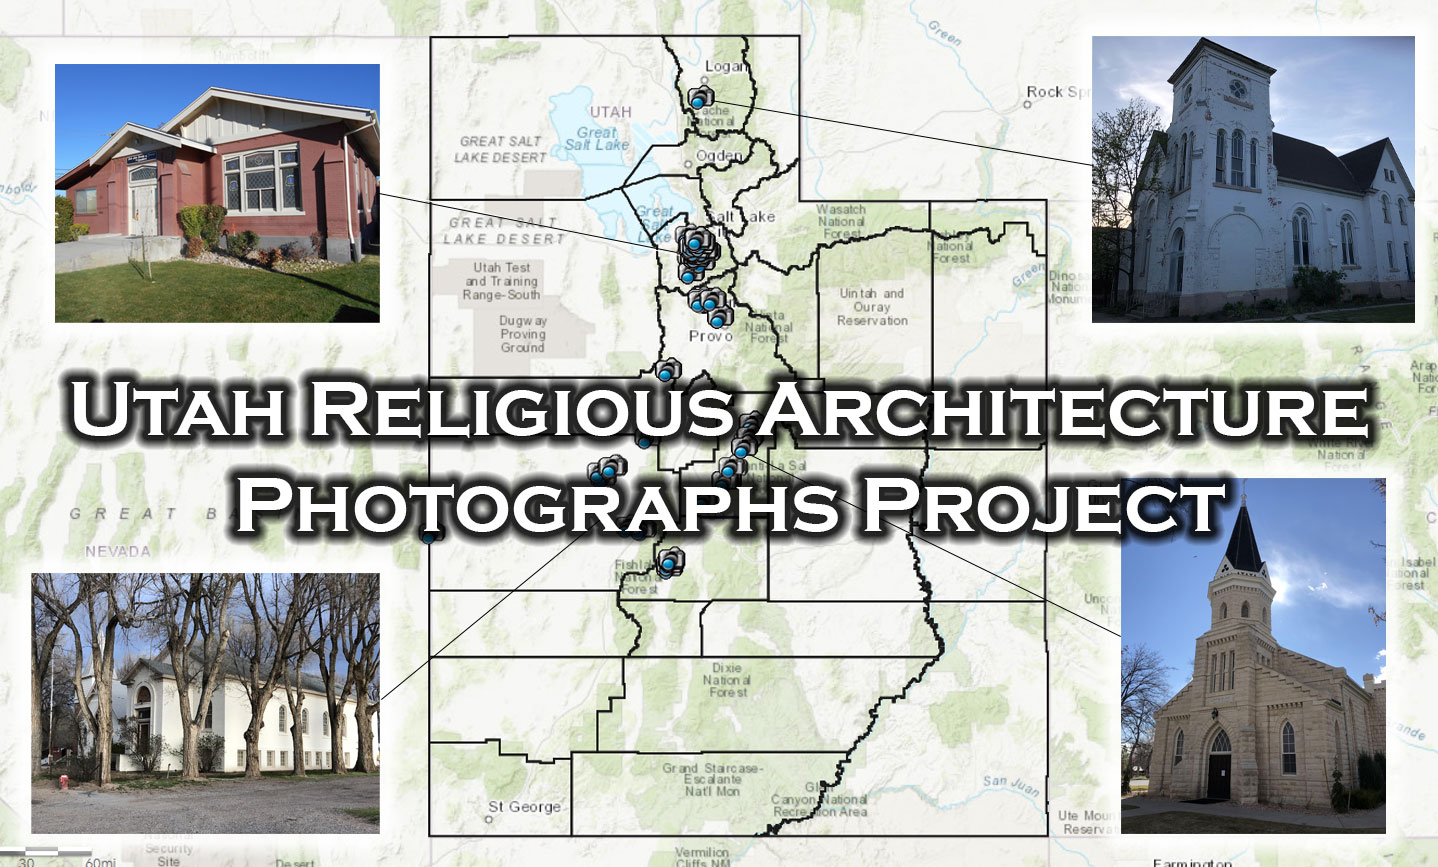 Image of Utah with icons representing photograph locations associated with the Utah Religious Architecture Photographs Project.